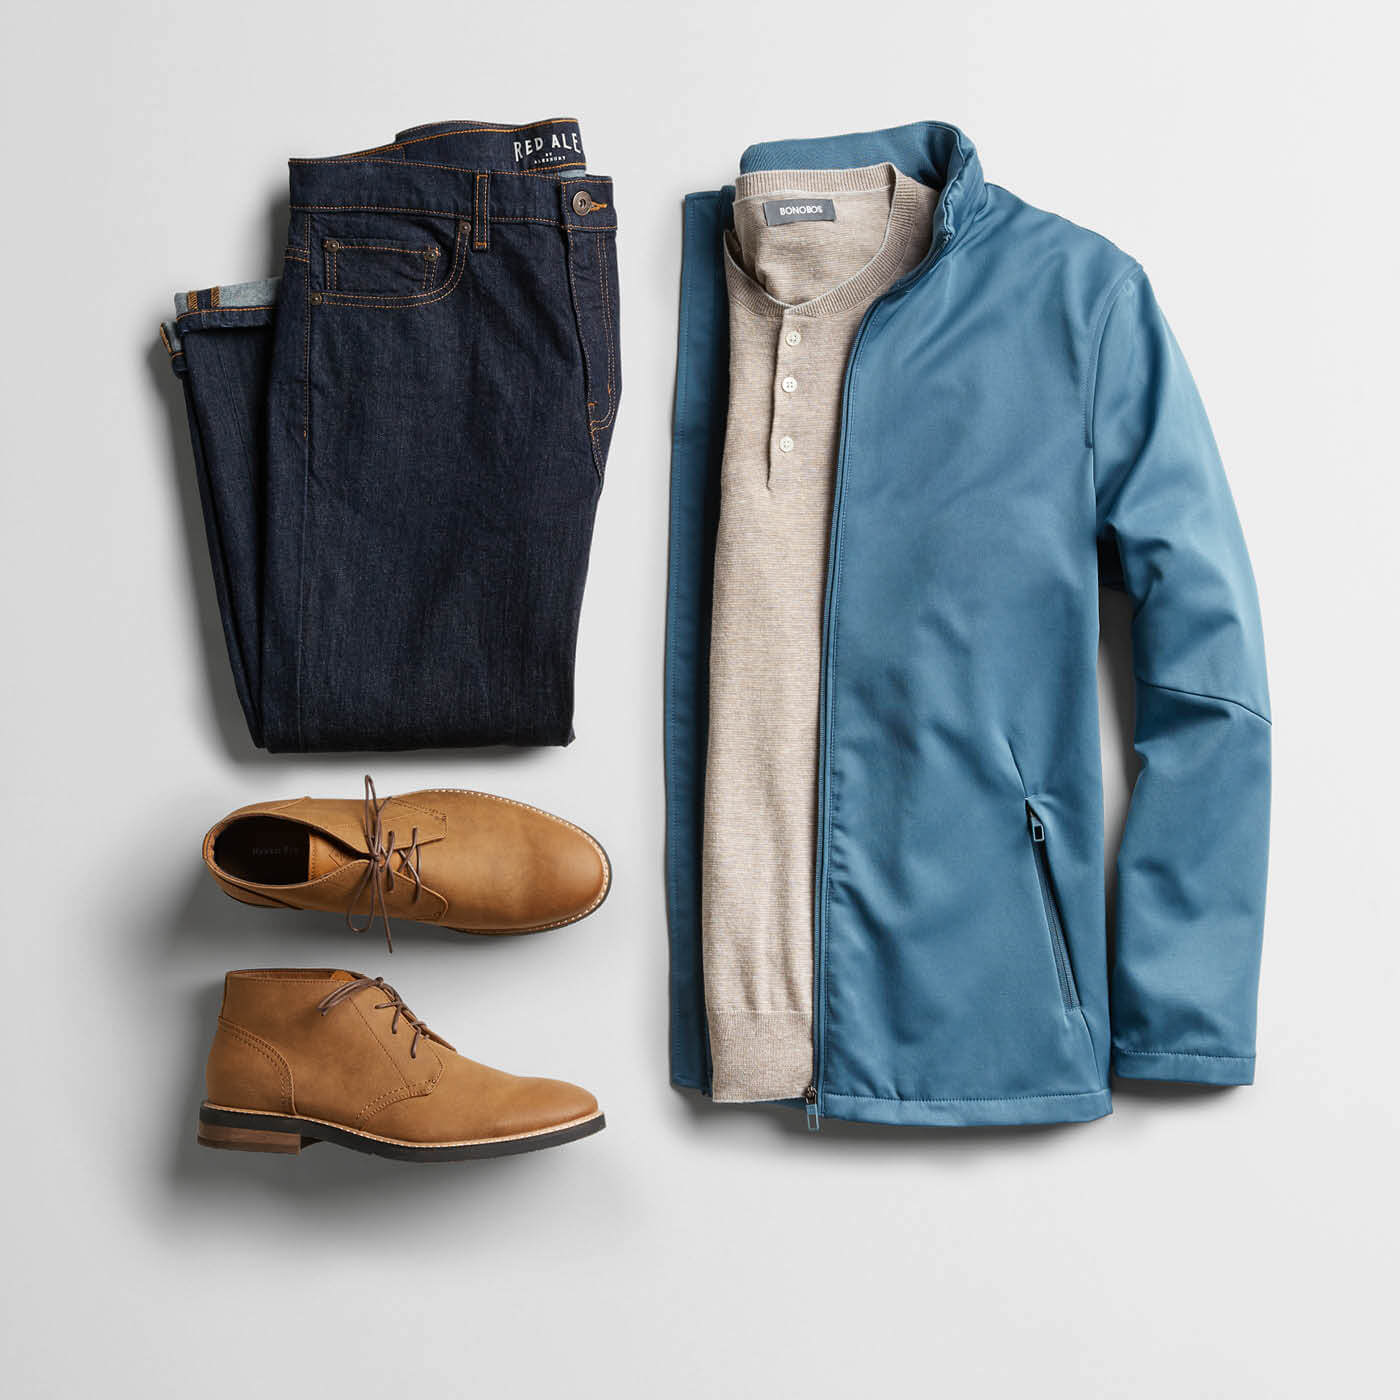 blue jacket, dark slacks and chukka boots